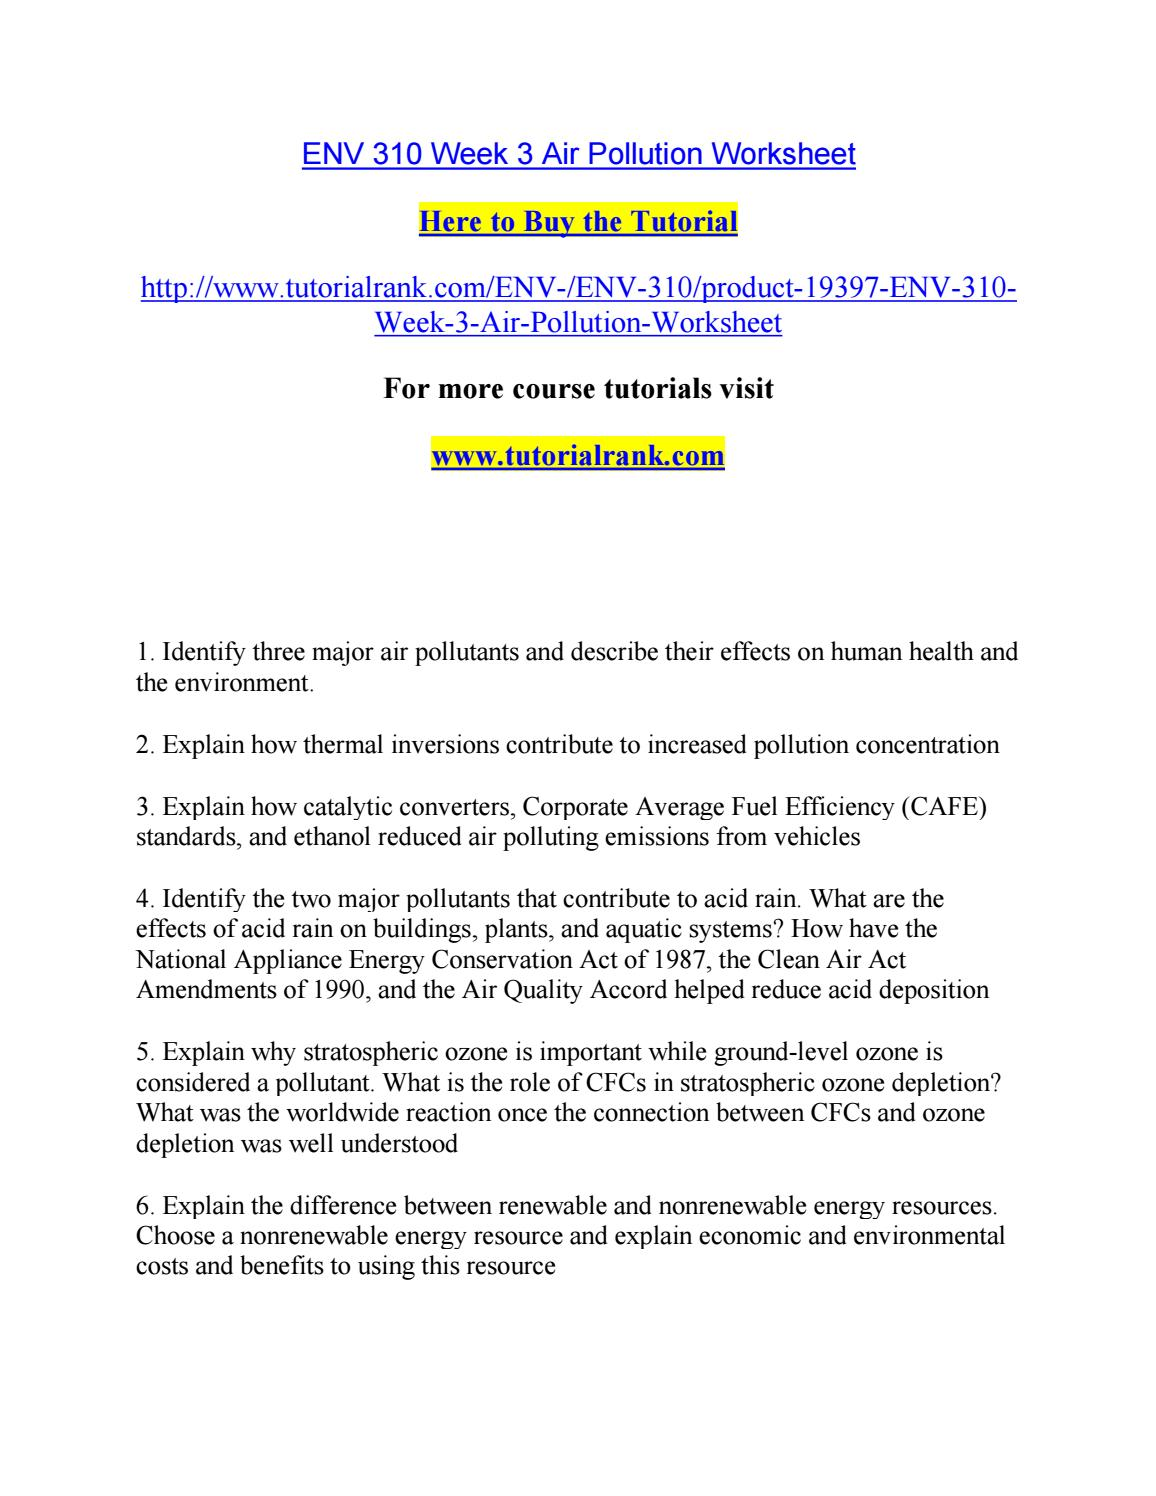 worksheet Air Pollution Worksheet env 310 week 3 air pollution worksheet by robertsonhunt8 issuu